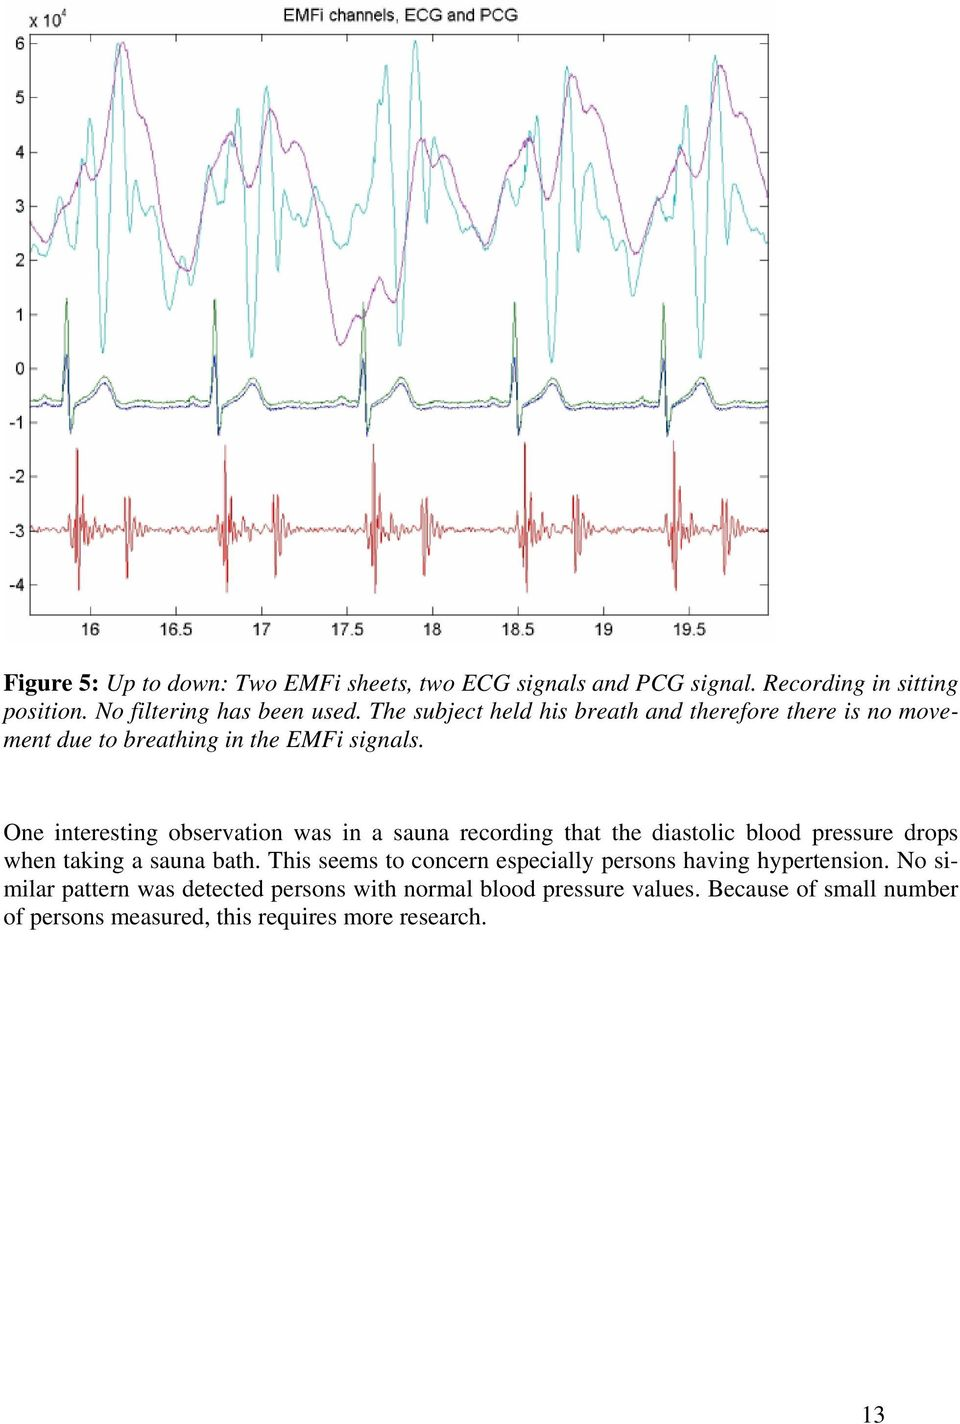 One interesting observation was in a sauna recording that the diastolic blood pressure drops when taking a sauna bath.